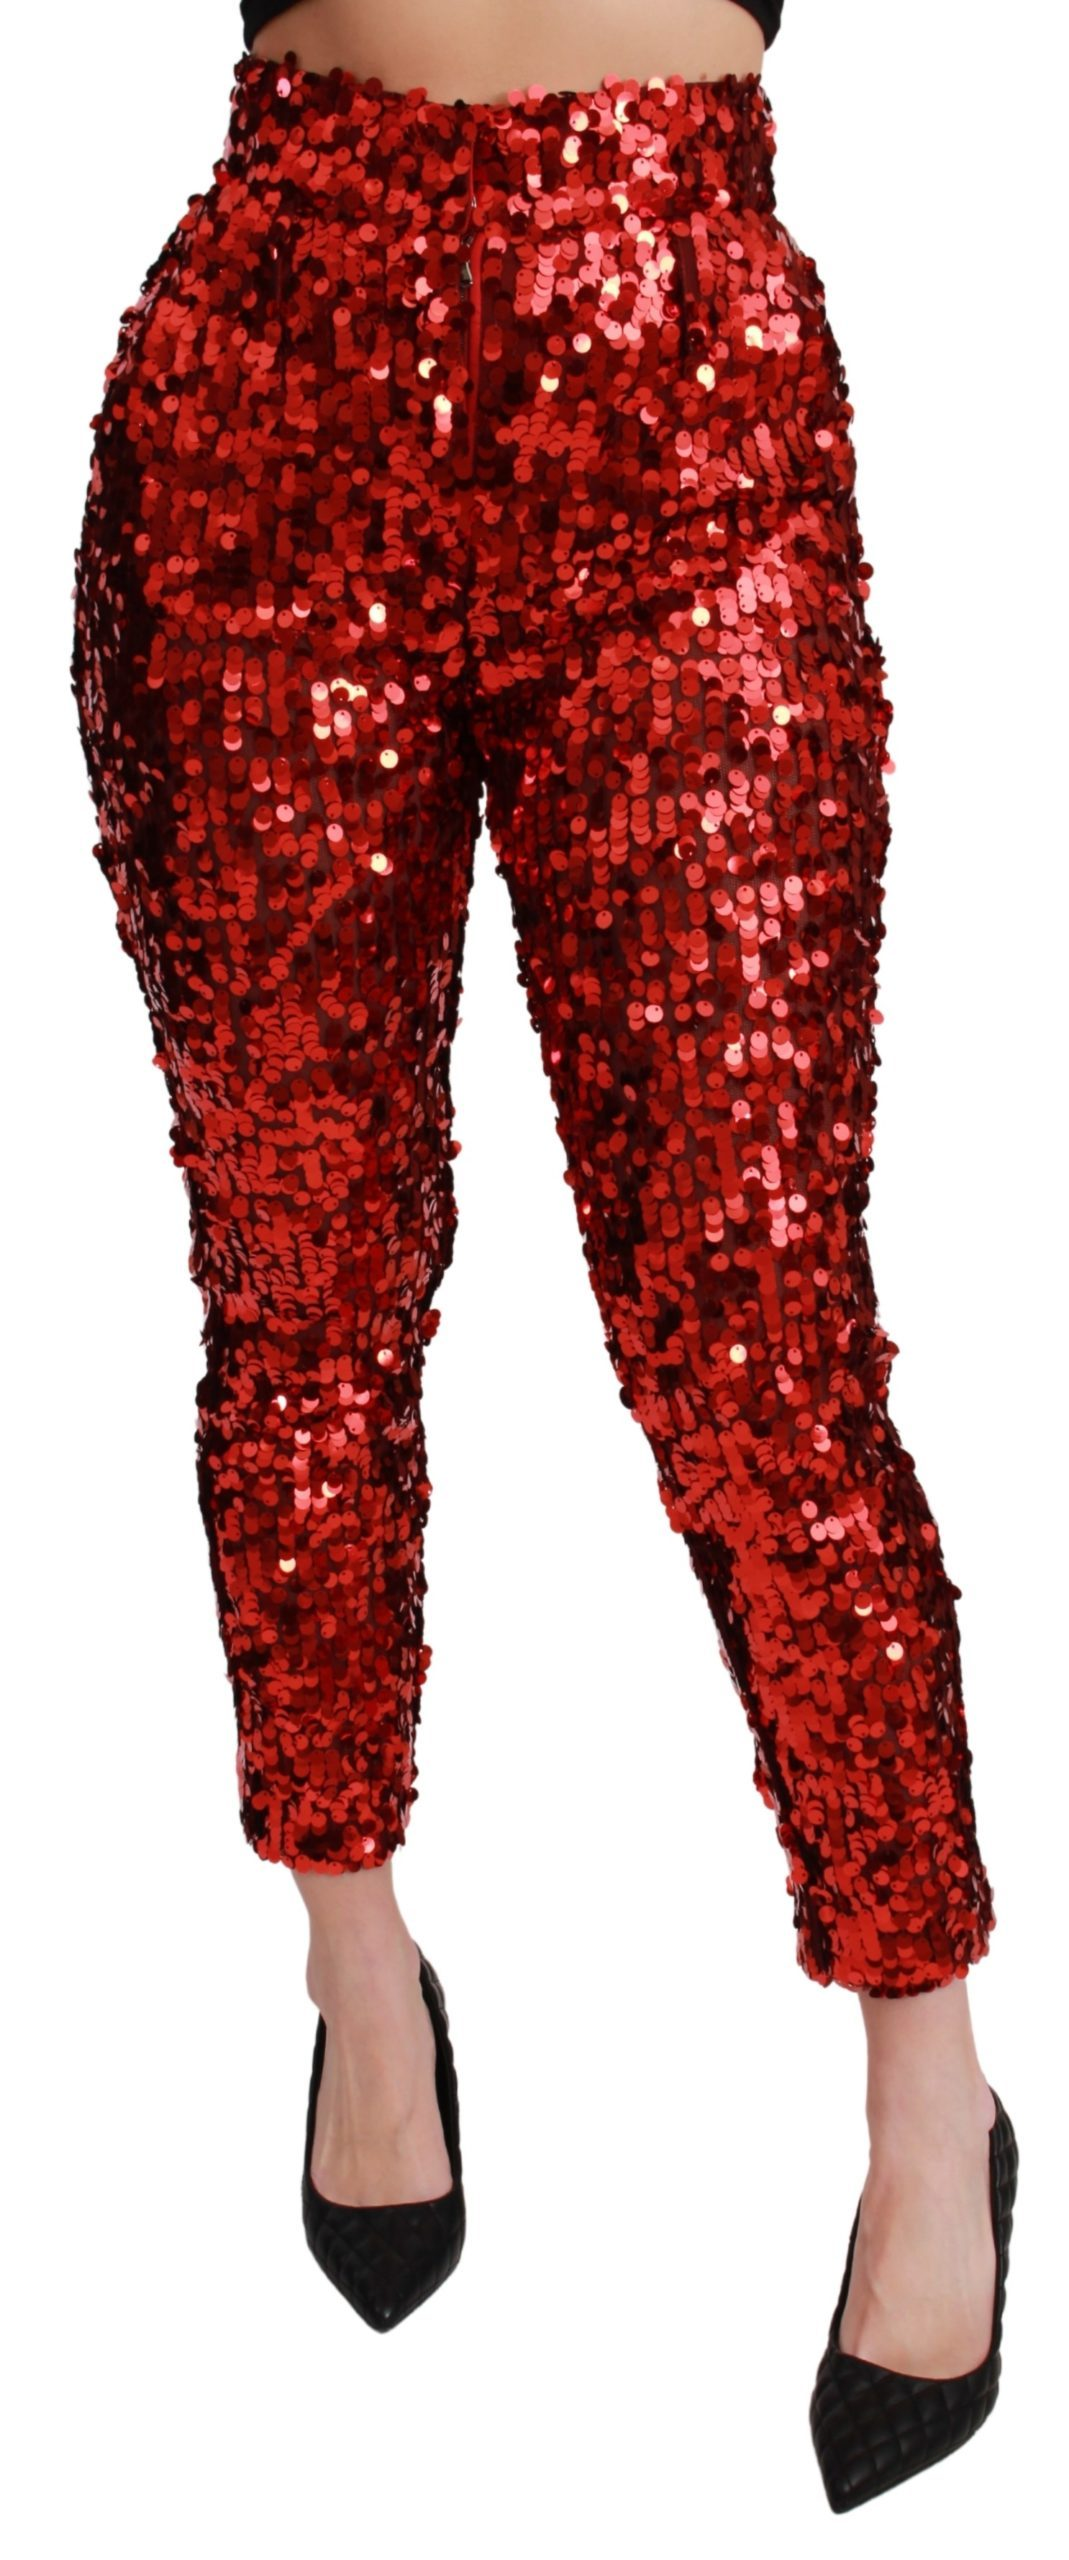 Dolce & Gabbana Women's Sequined Cropped Trouser Red PAN71052 - IT38|XS